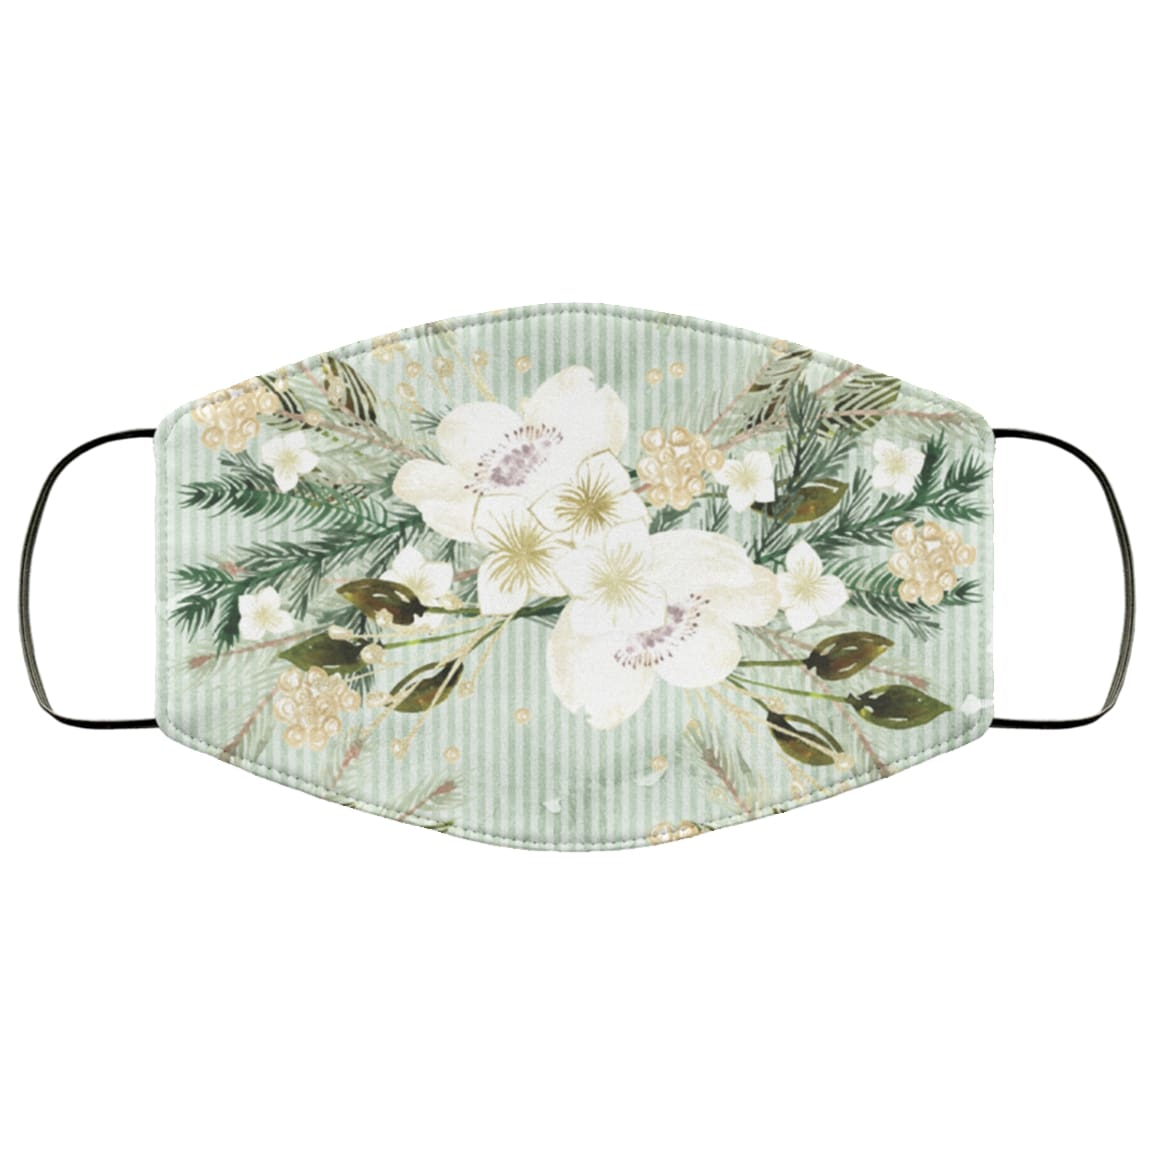 Tropical flowers art anti pollution face mask 1